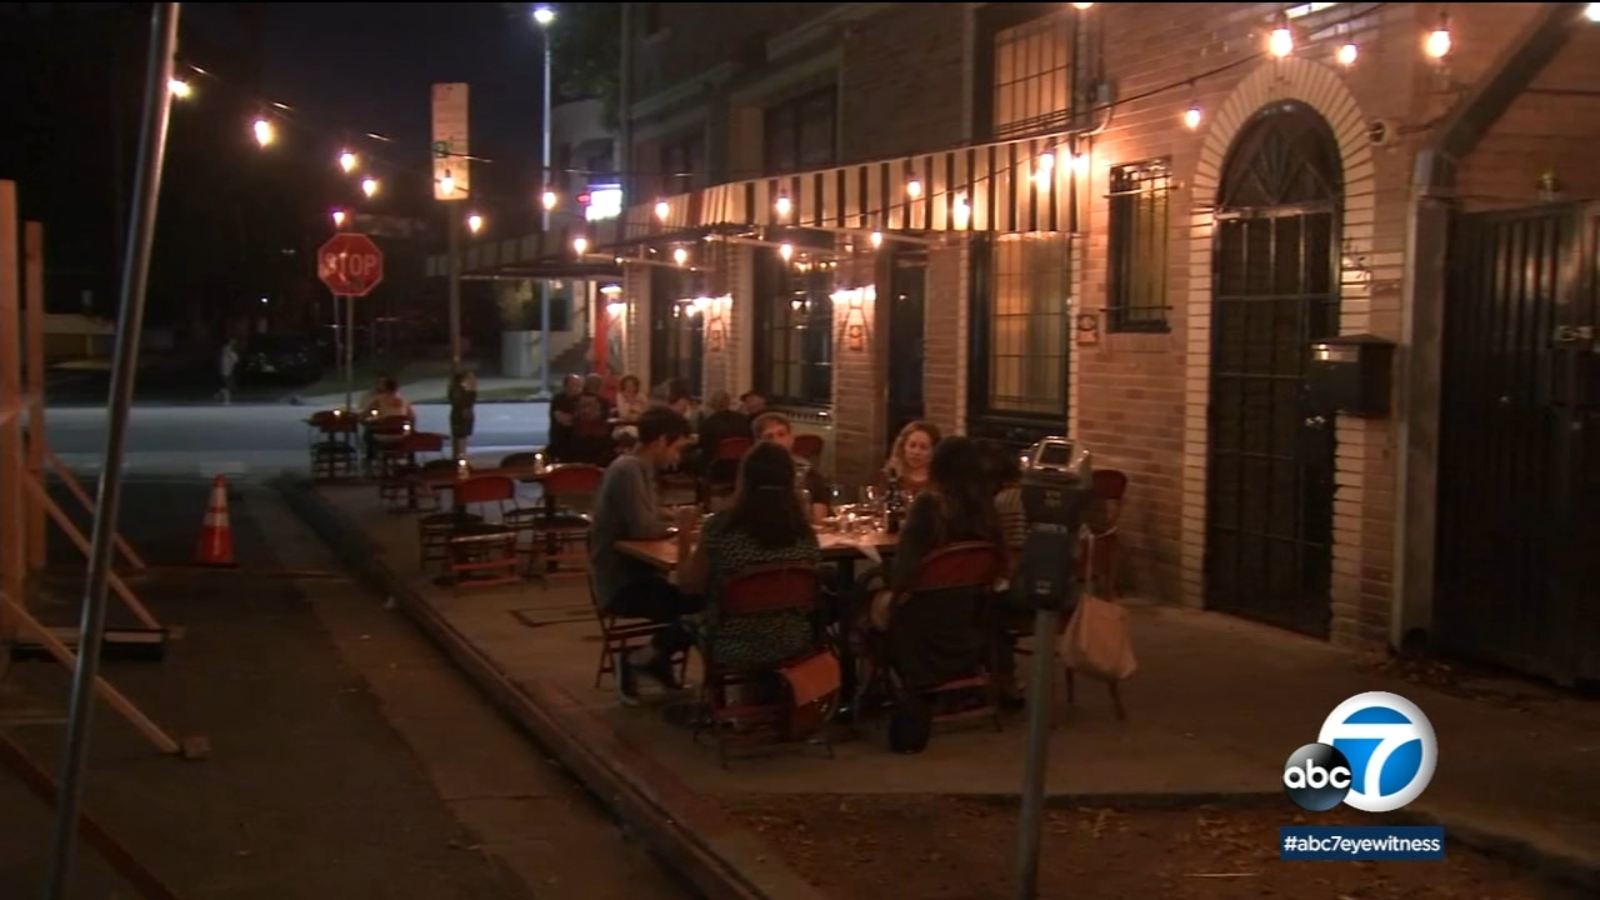 Outdoor dining may become permanent option in Los Angeles